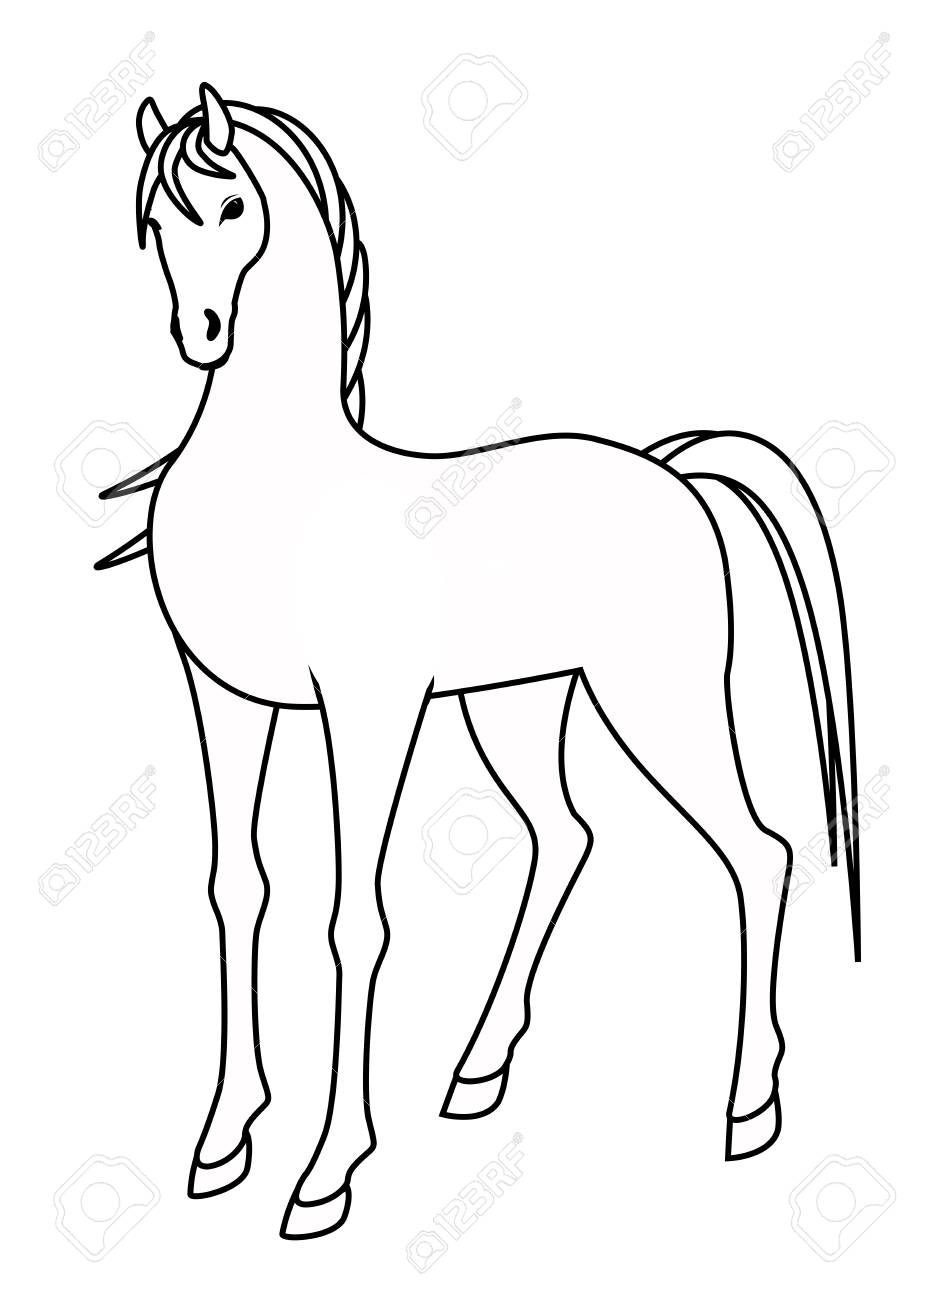 928x1300 Drawing Of A Horse Standing Stock Photo, Picture And Royalty Free